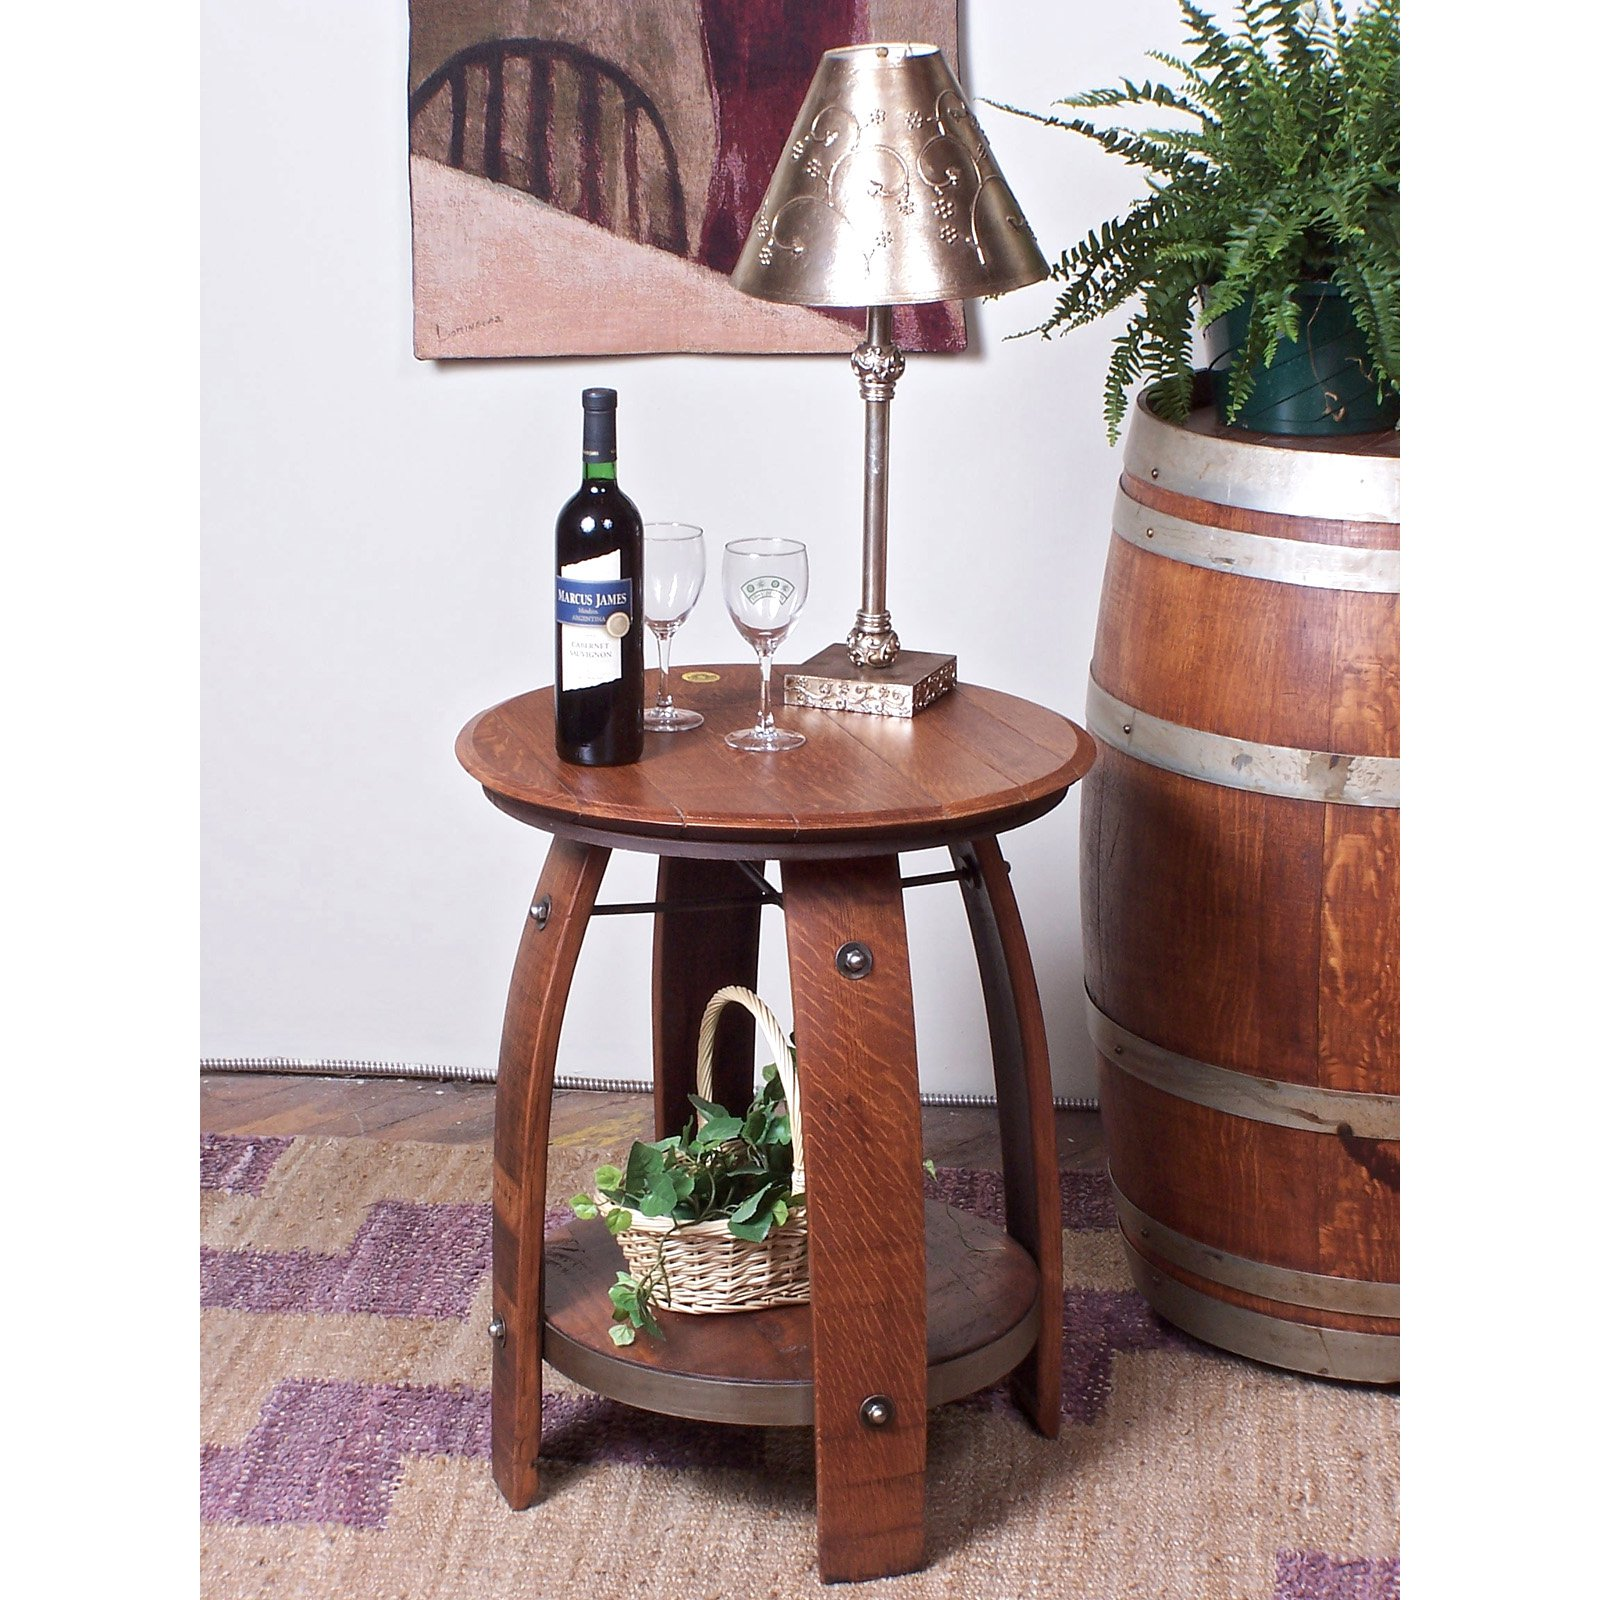 2 Day Designs Reclaimed Wine Furniture Barrel Side Table with Shelf